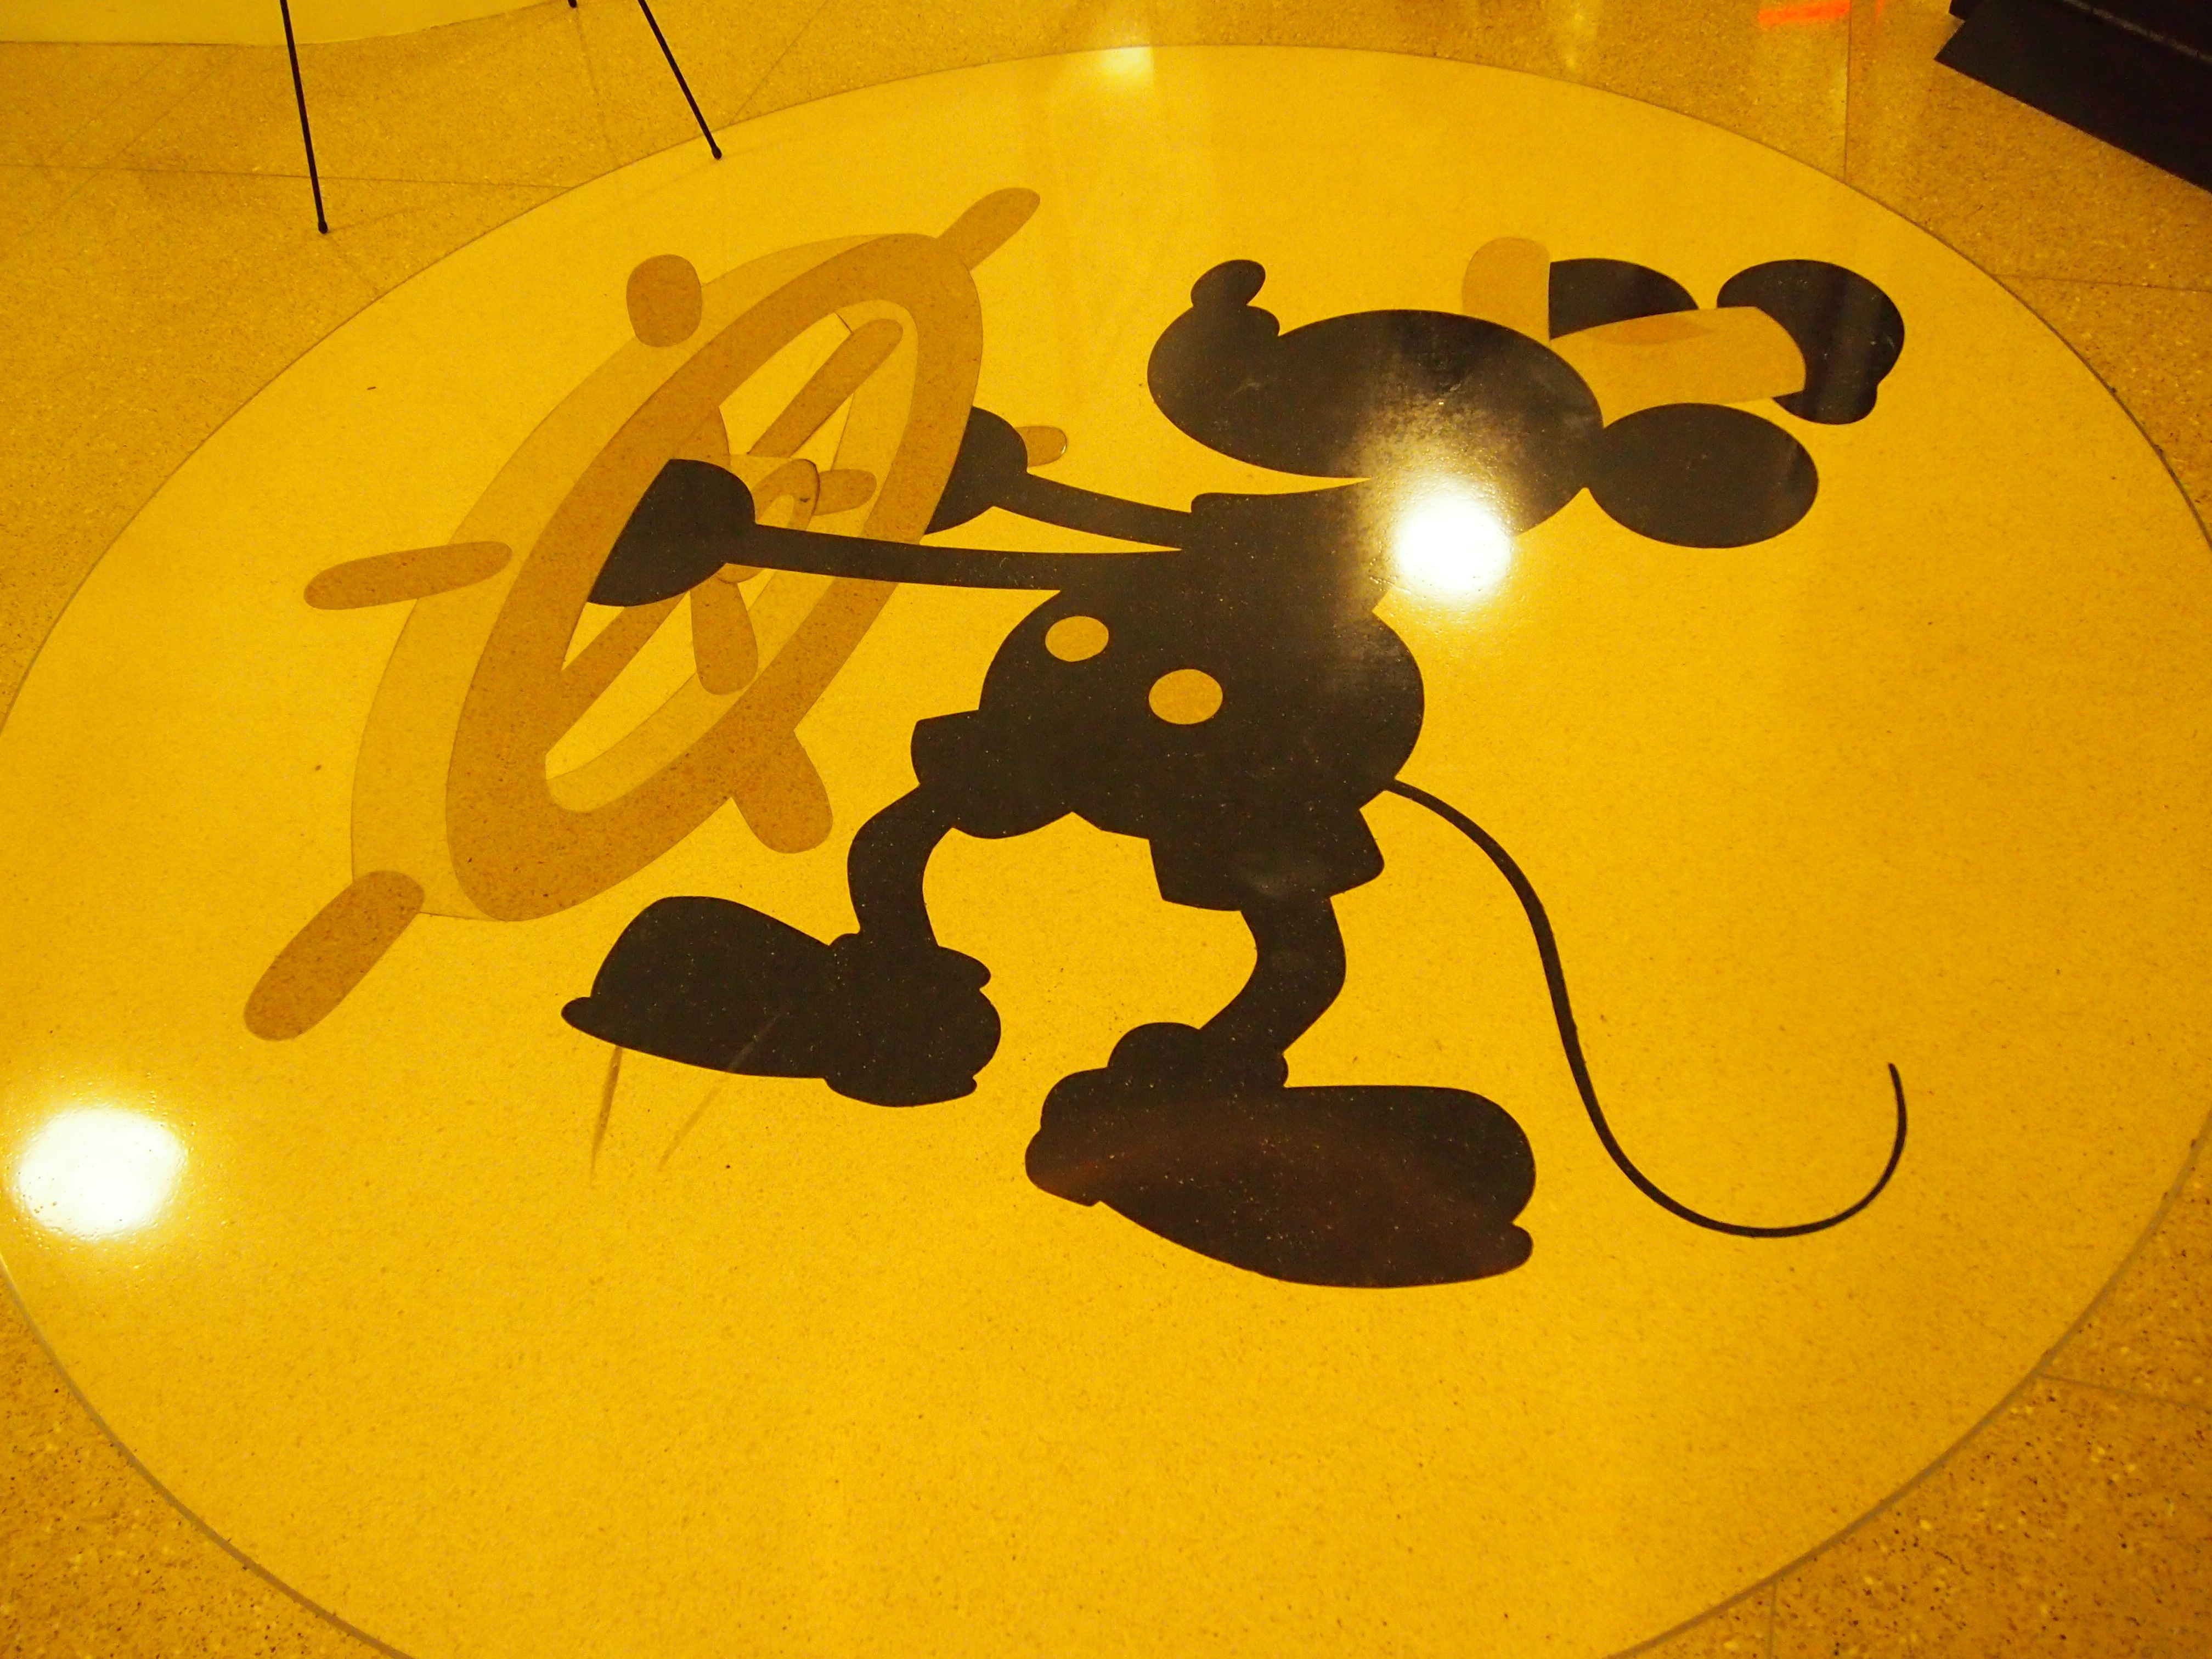 Don't step on Steamboat Willie